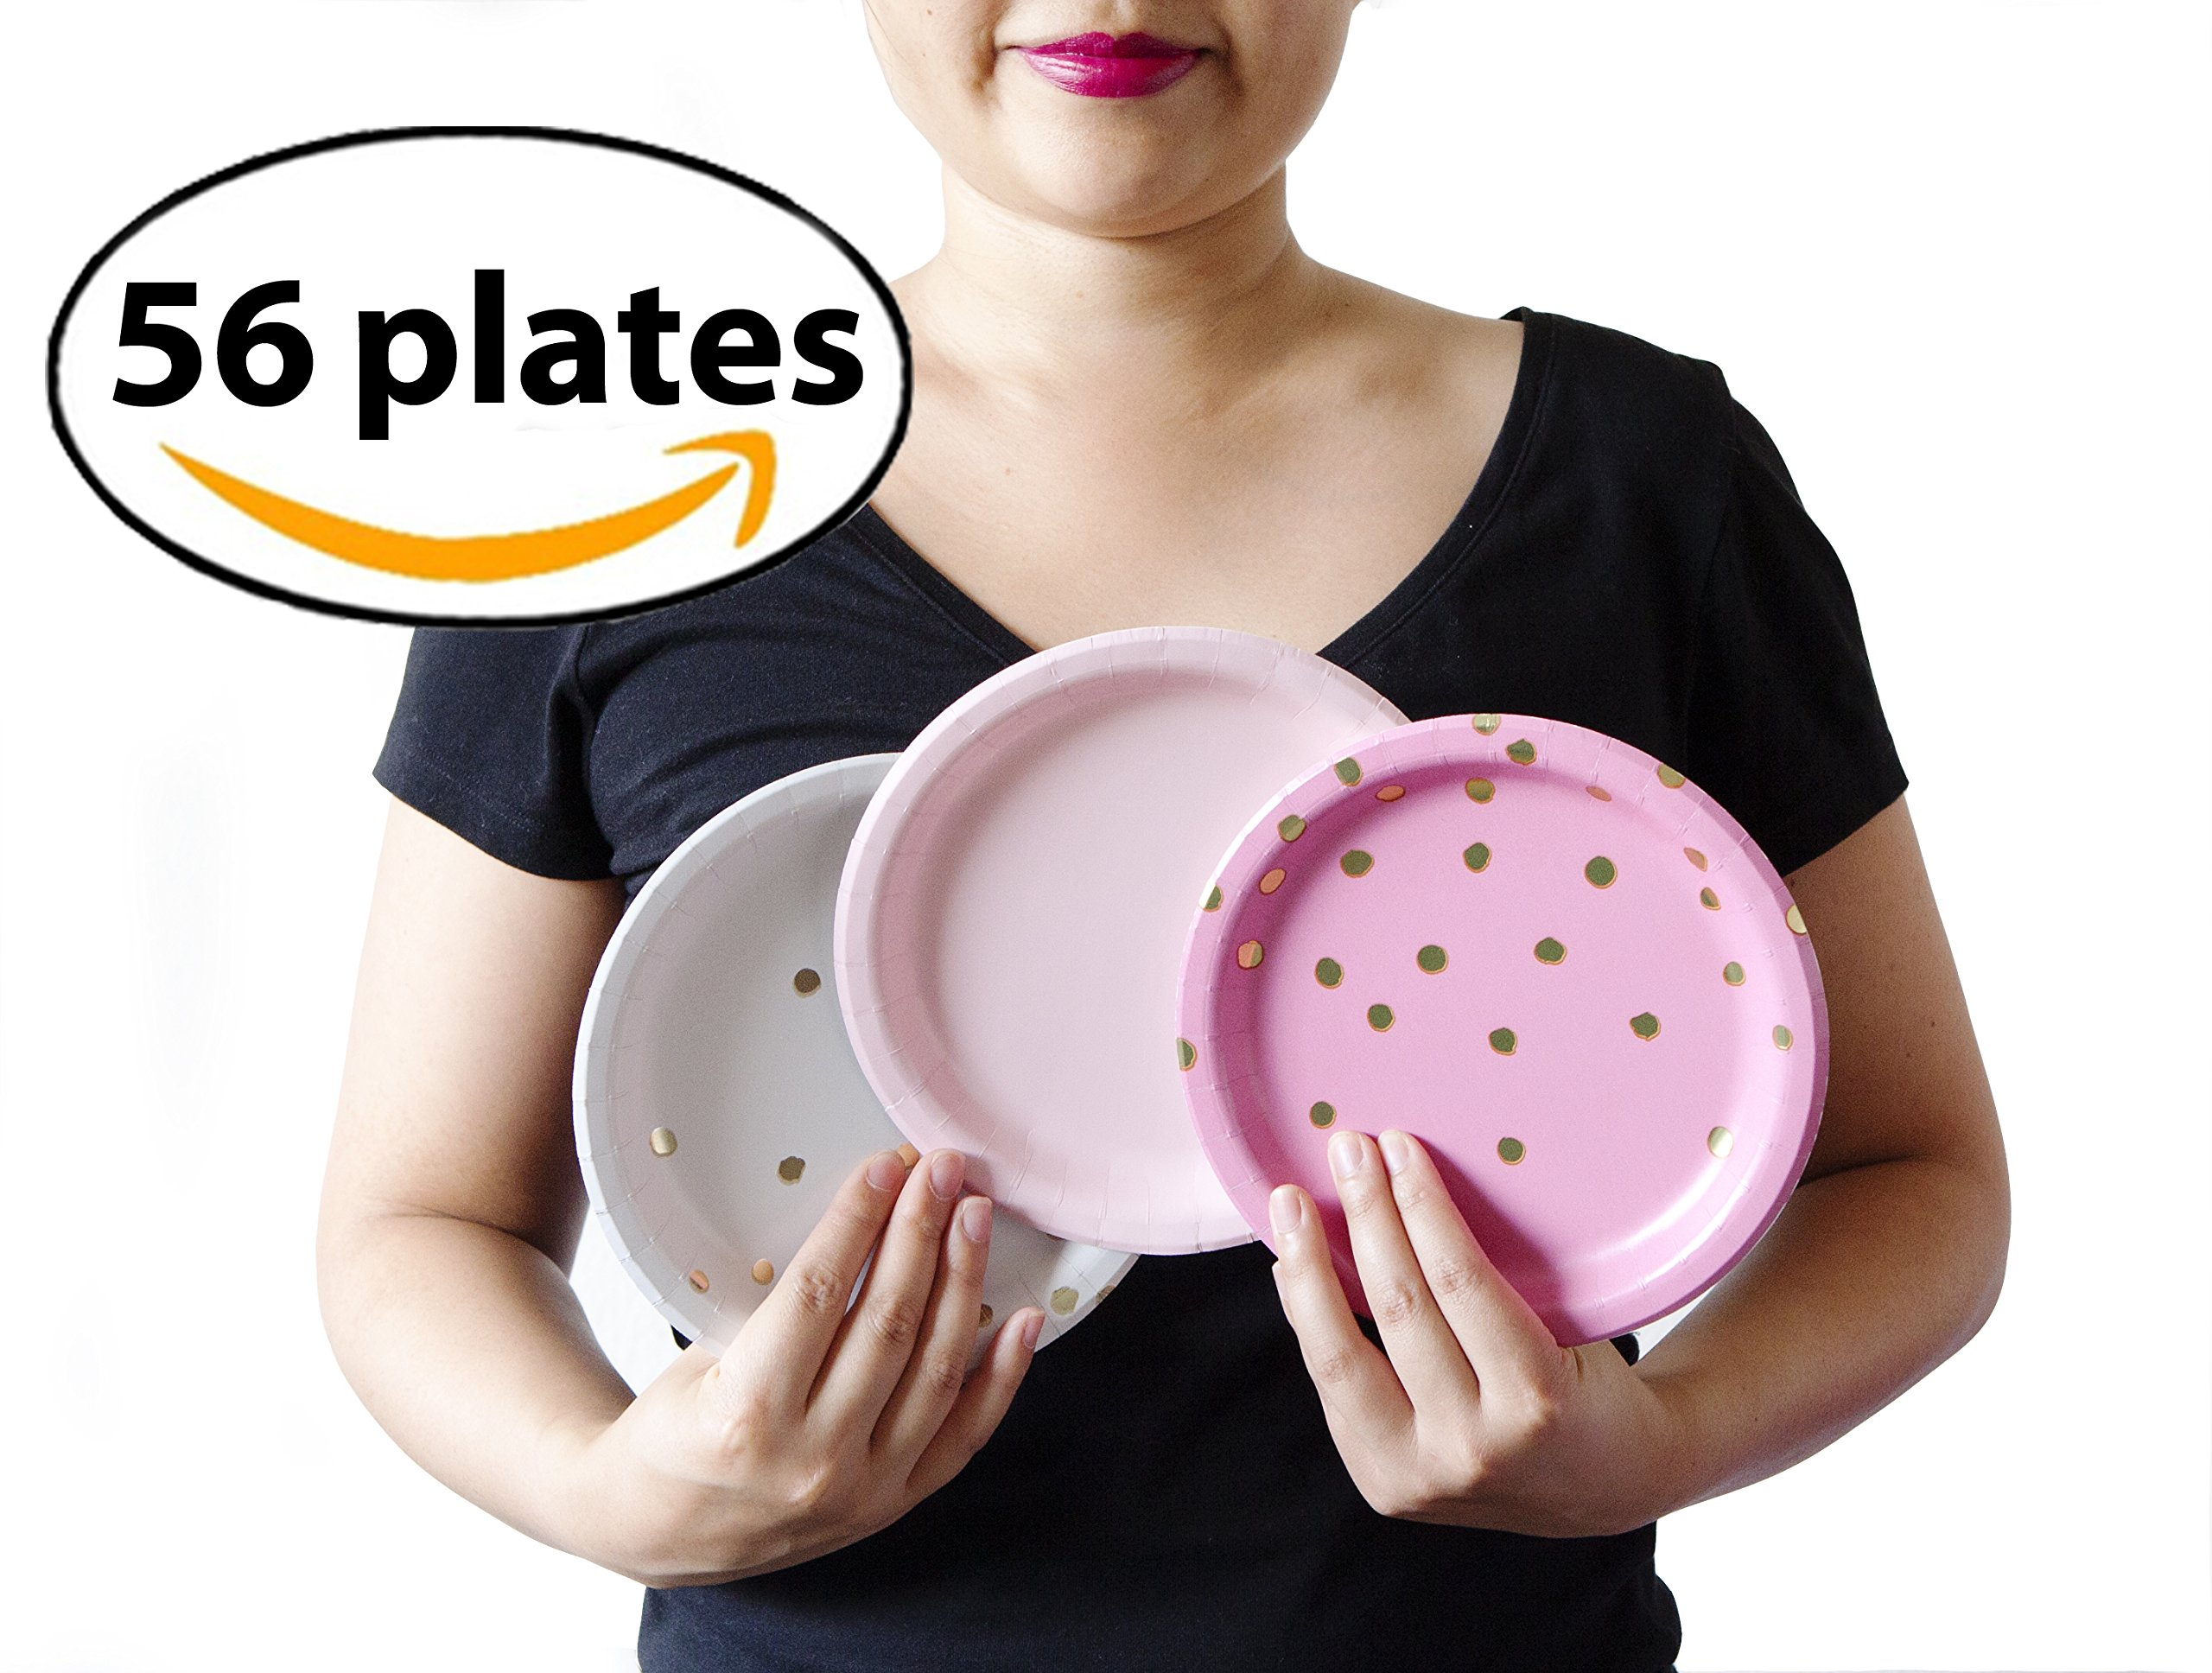 Cute Pink Bachelorette Party Small Plates, 56 Count. for Any Bachelorette Or Girl Party!